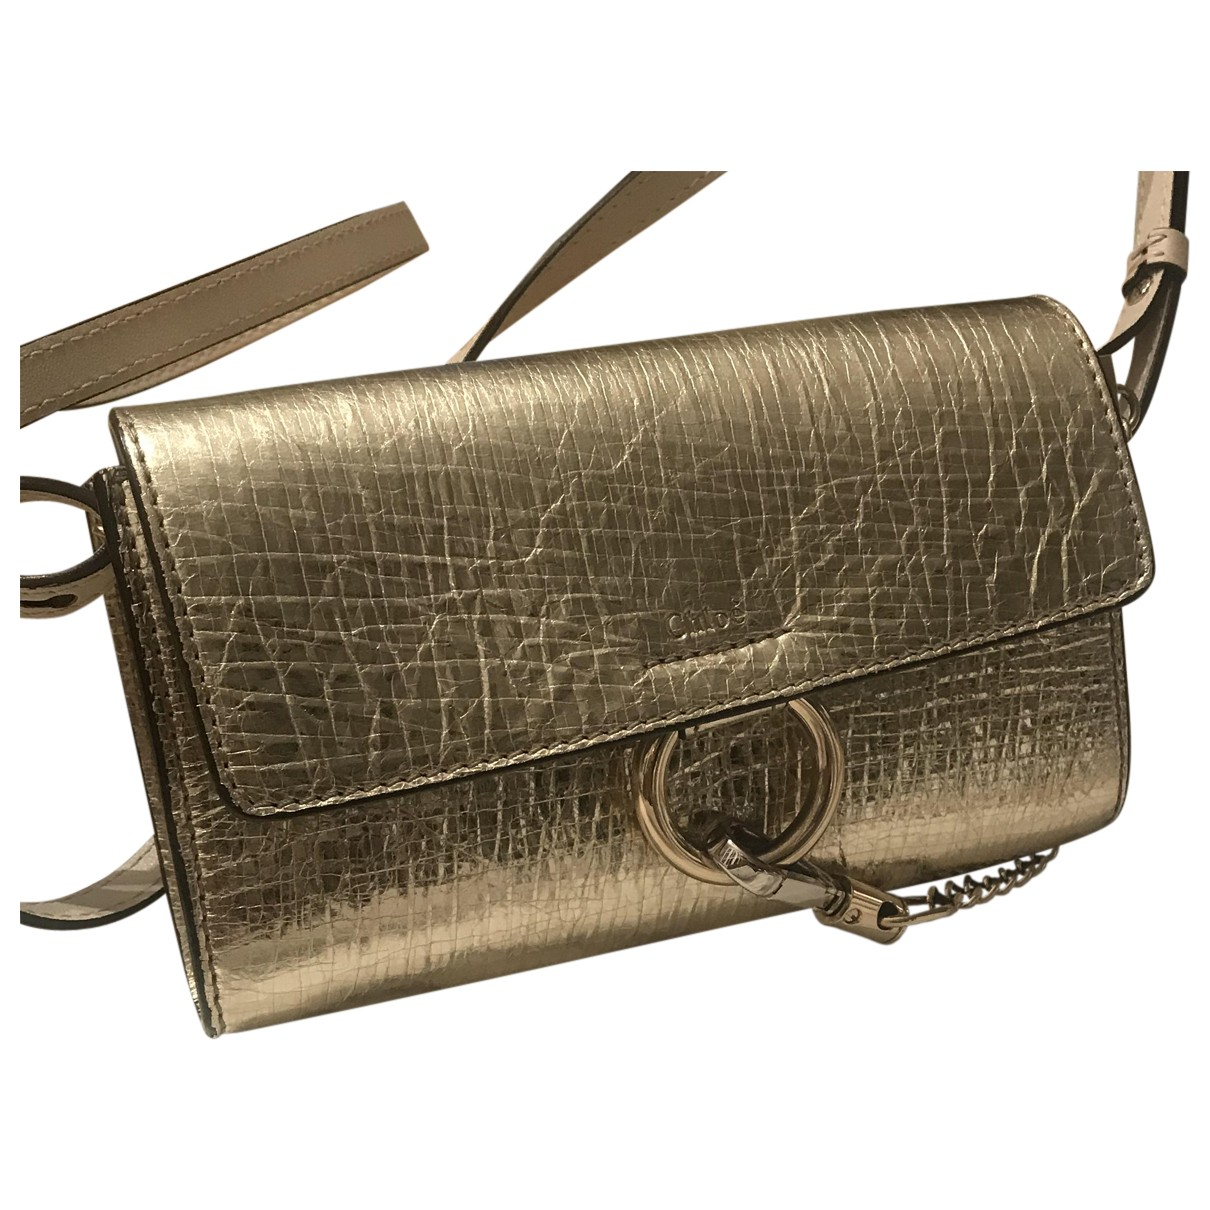 Chloe Faye Clutch in  Gold Leder